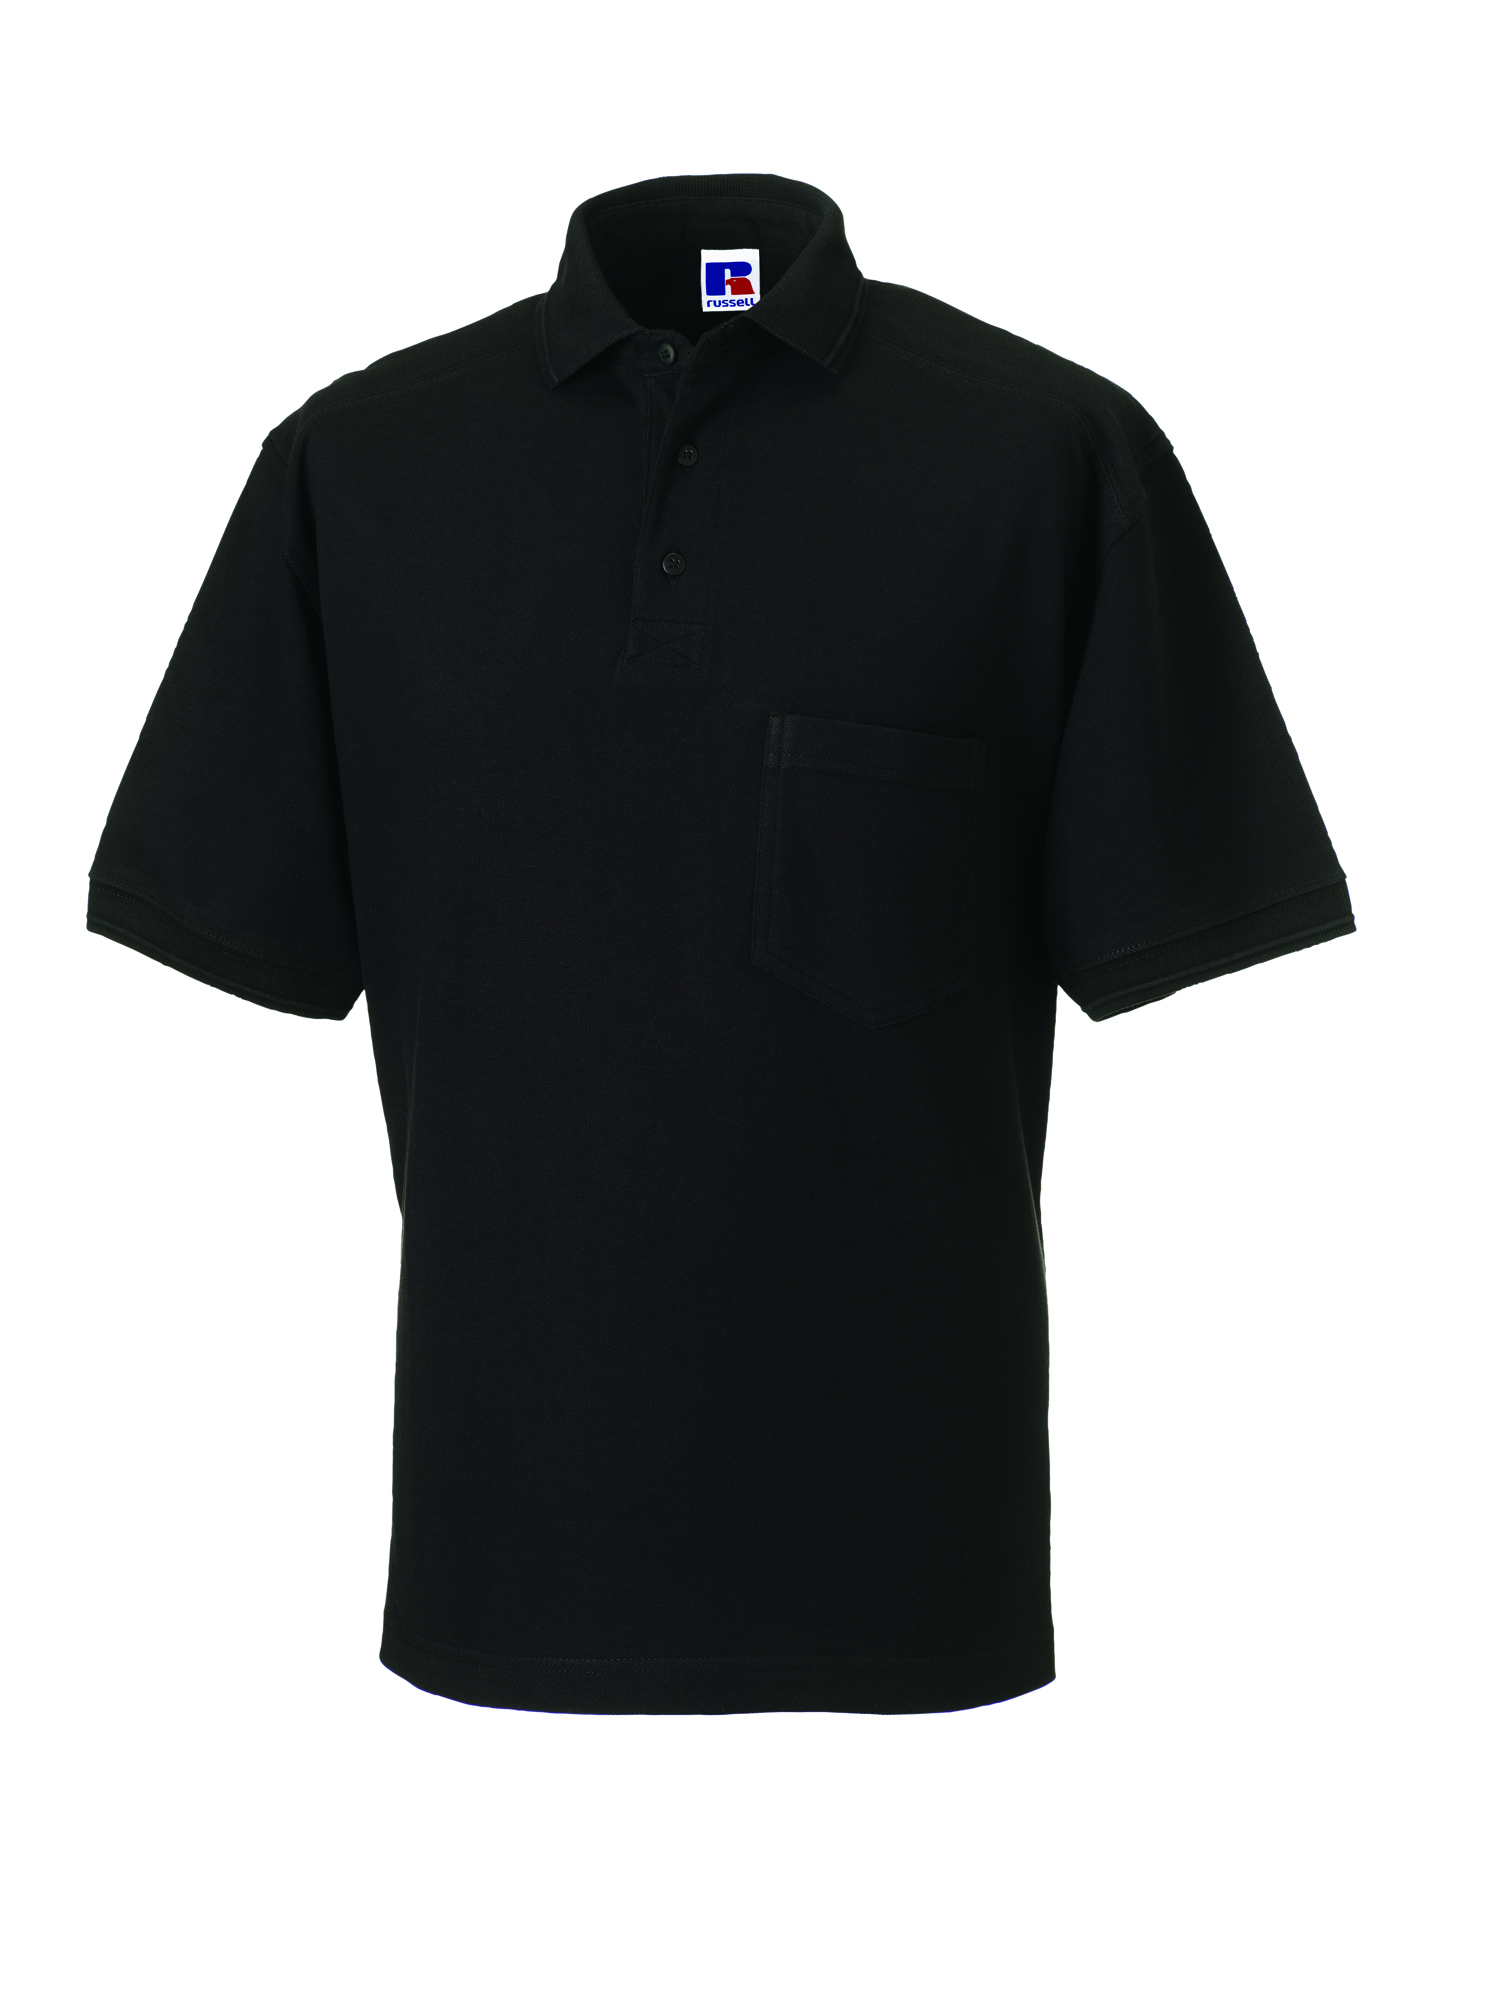 Heavy Duty Cotton Polo - Black - S